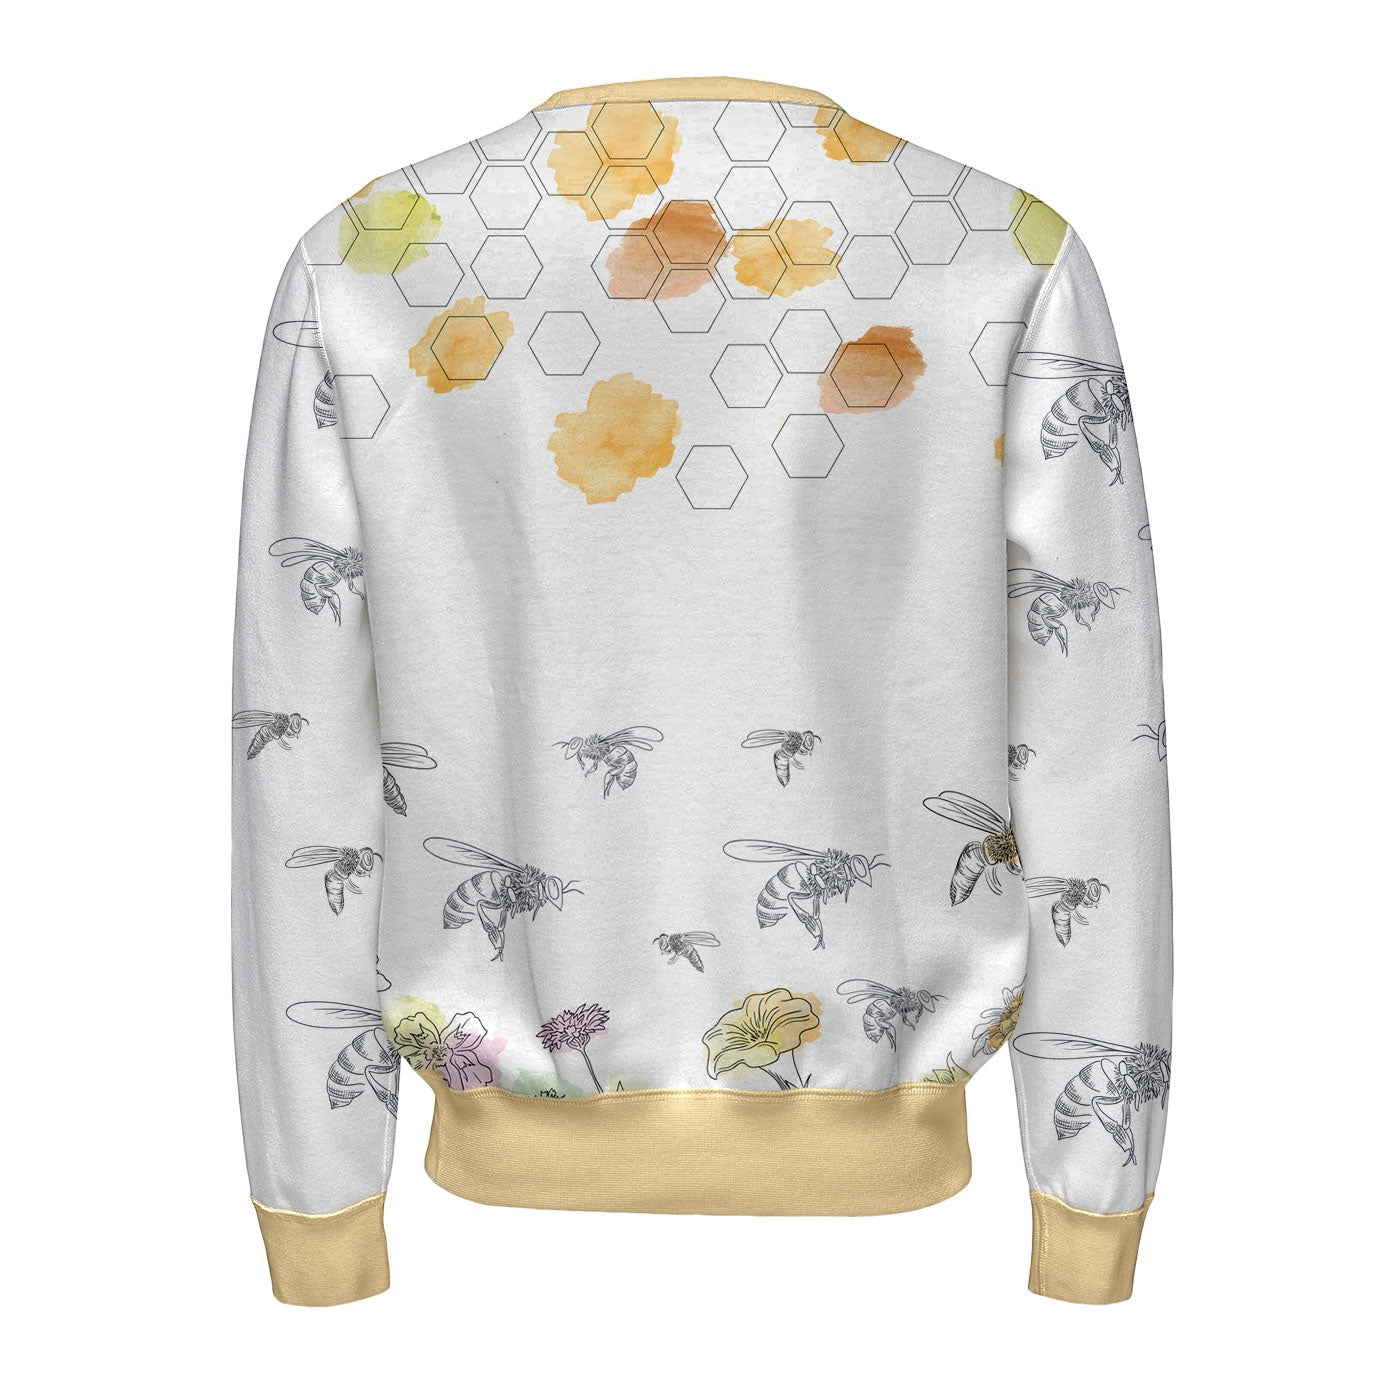 Minimal Bee Sweatshirt